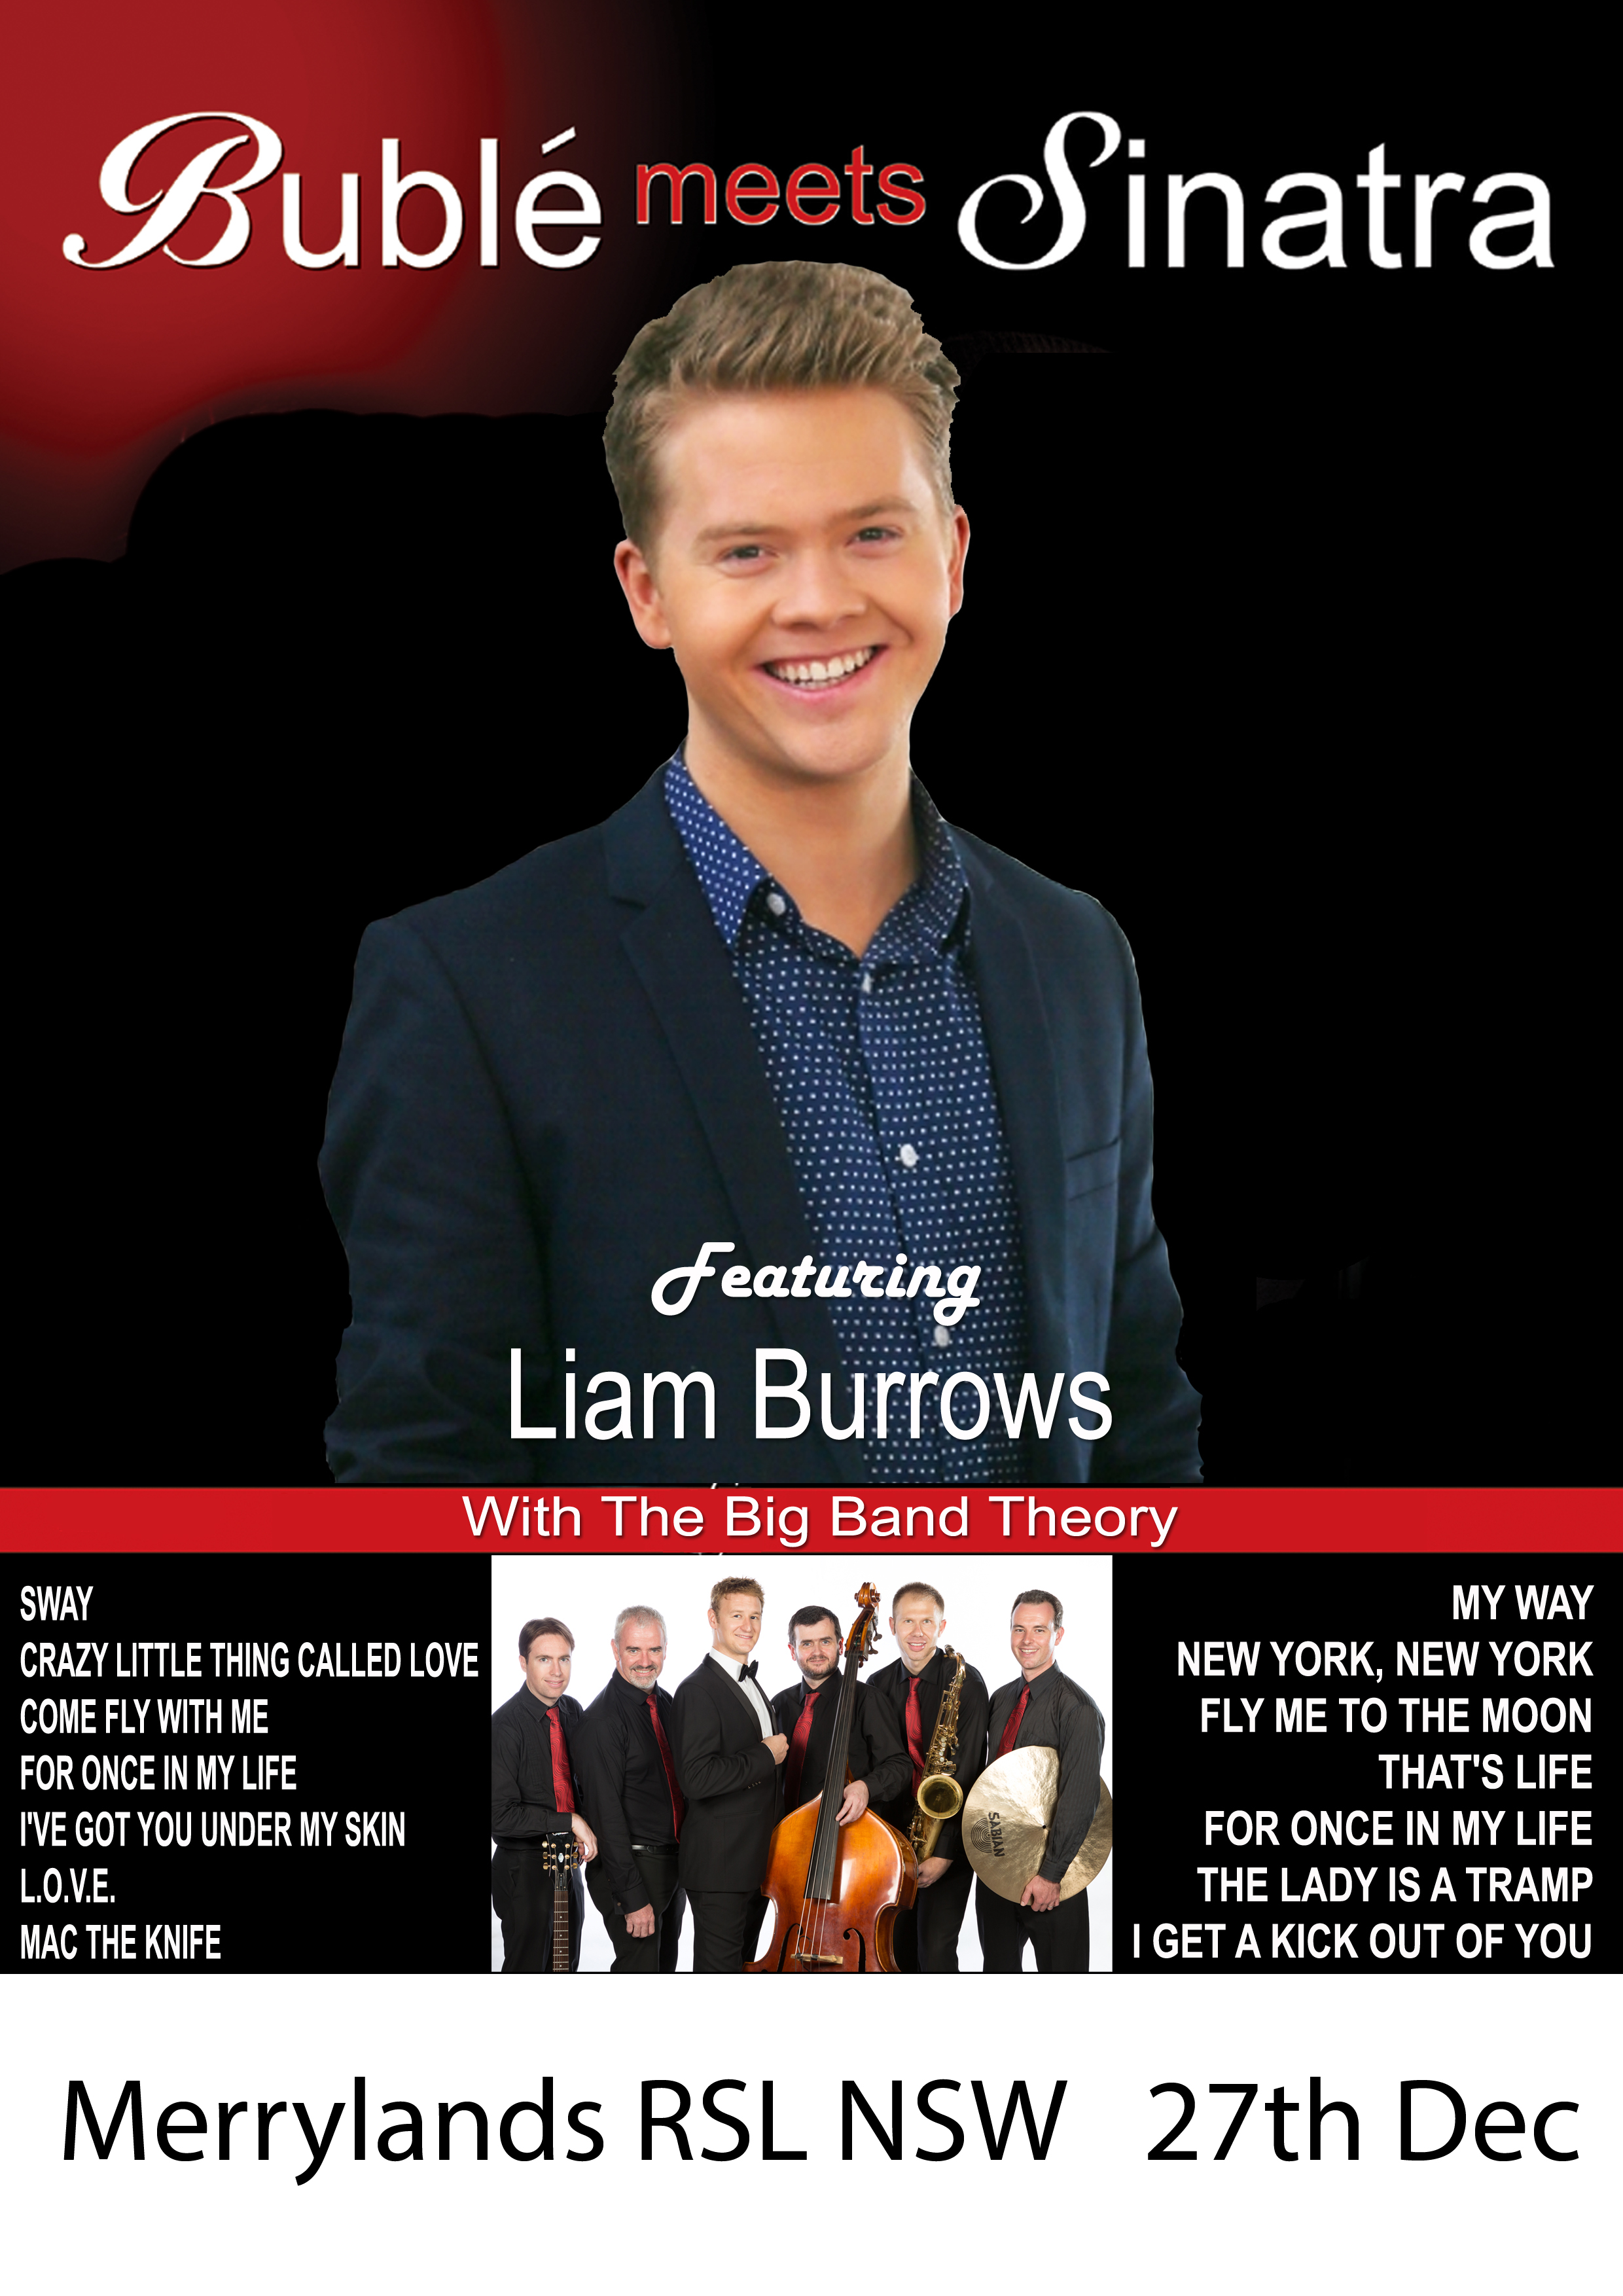 buble-meets-sinatra-with-liam-burrows